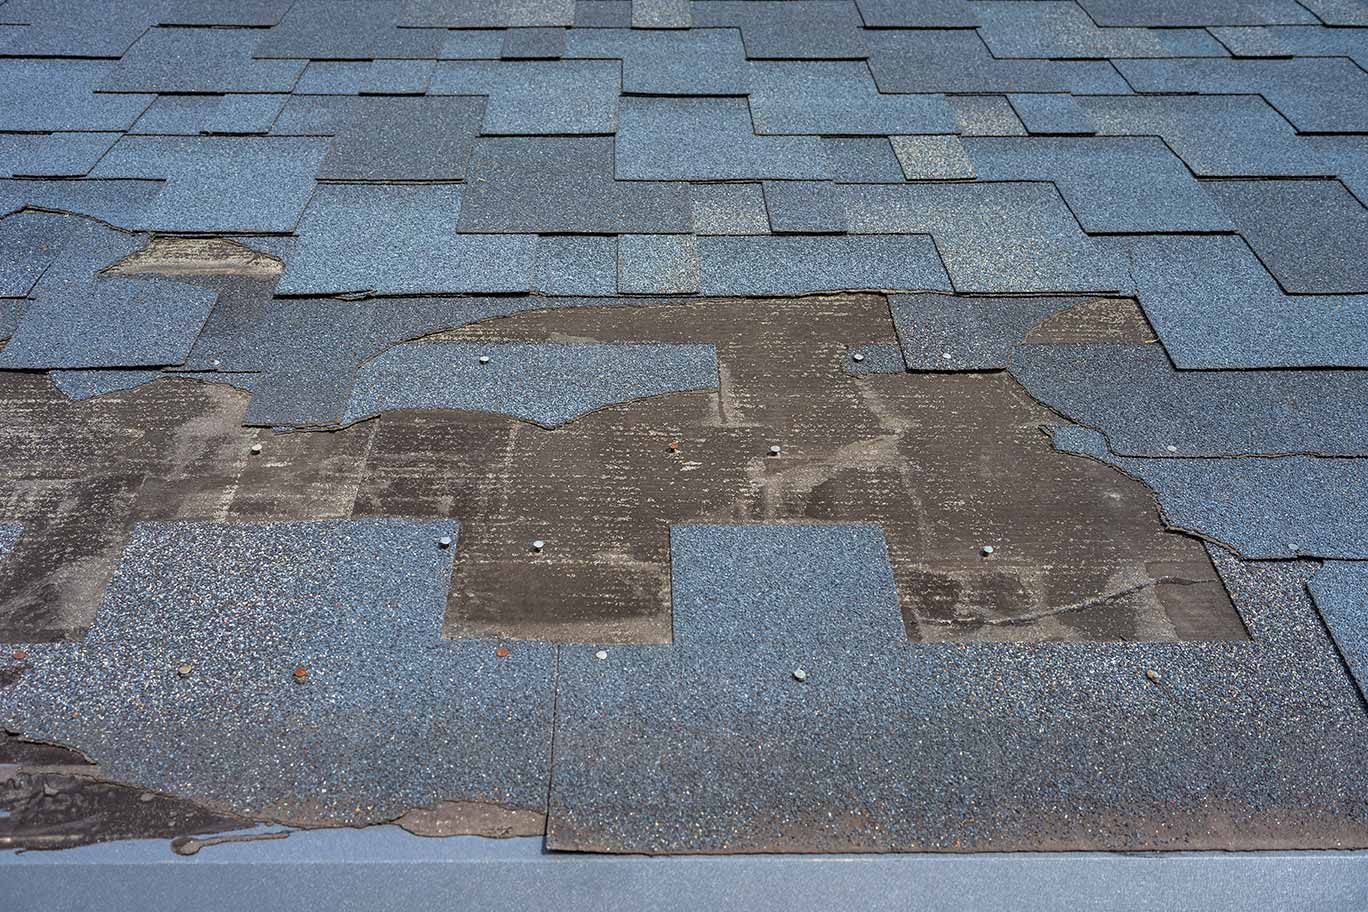 damaged and missing shingles